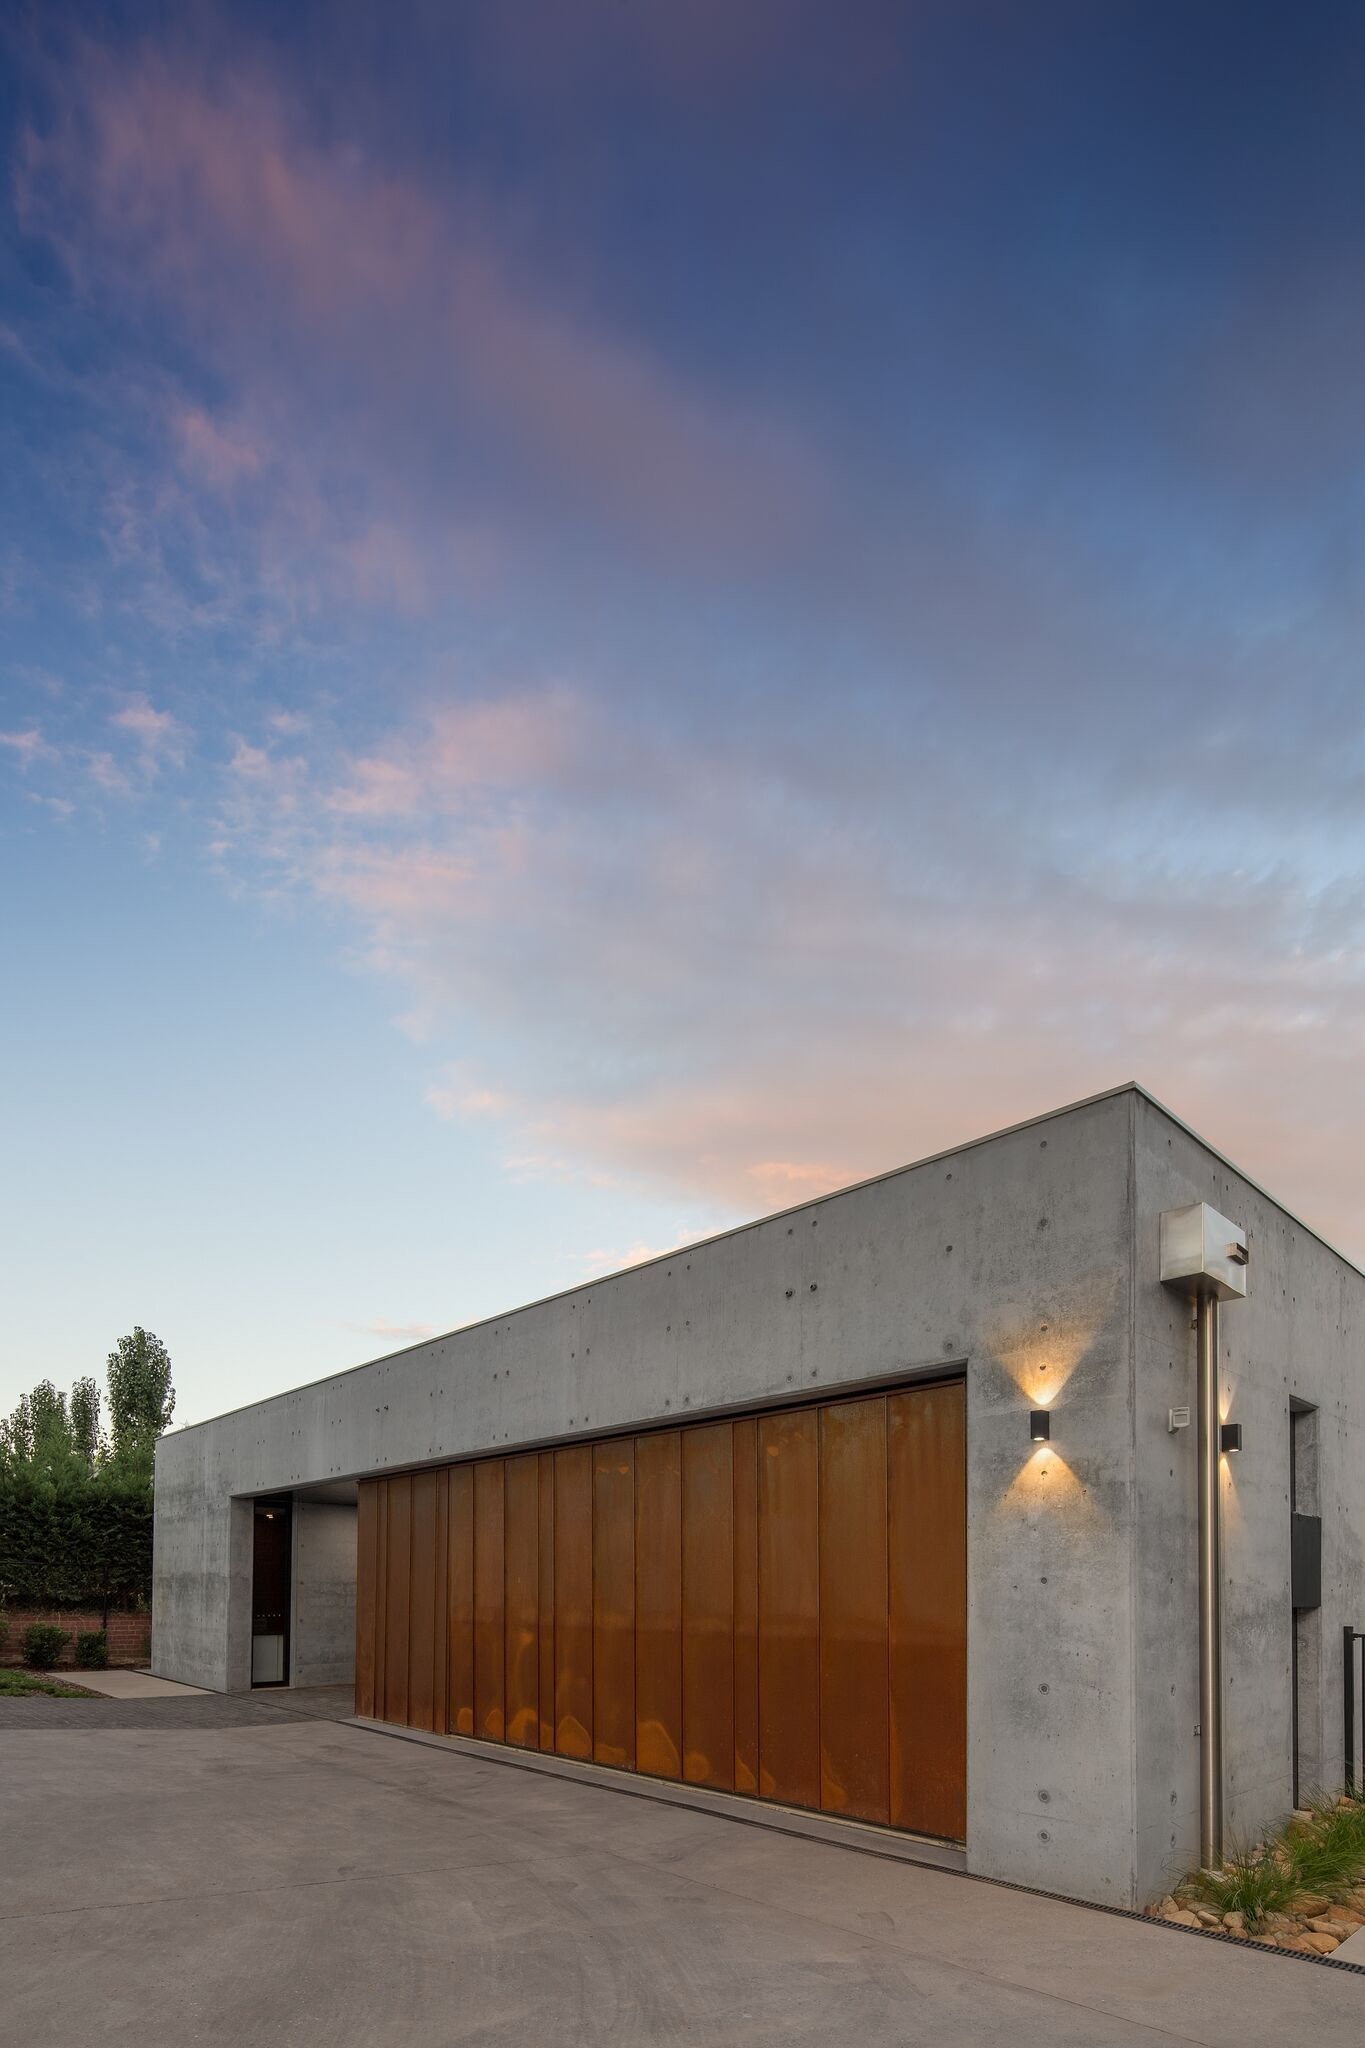 Garage Moderne Corten Garage And Concrete More M A T E R I A L Pinterest